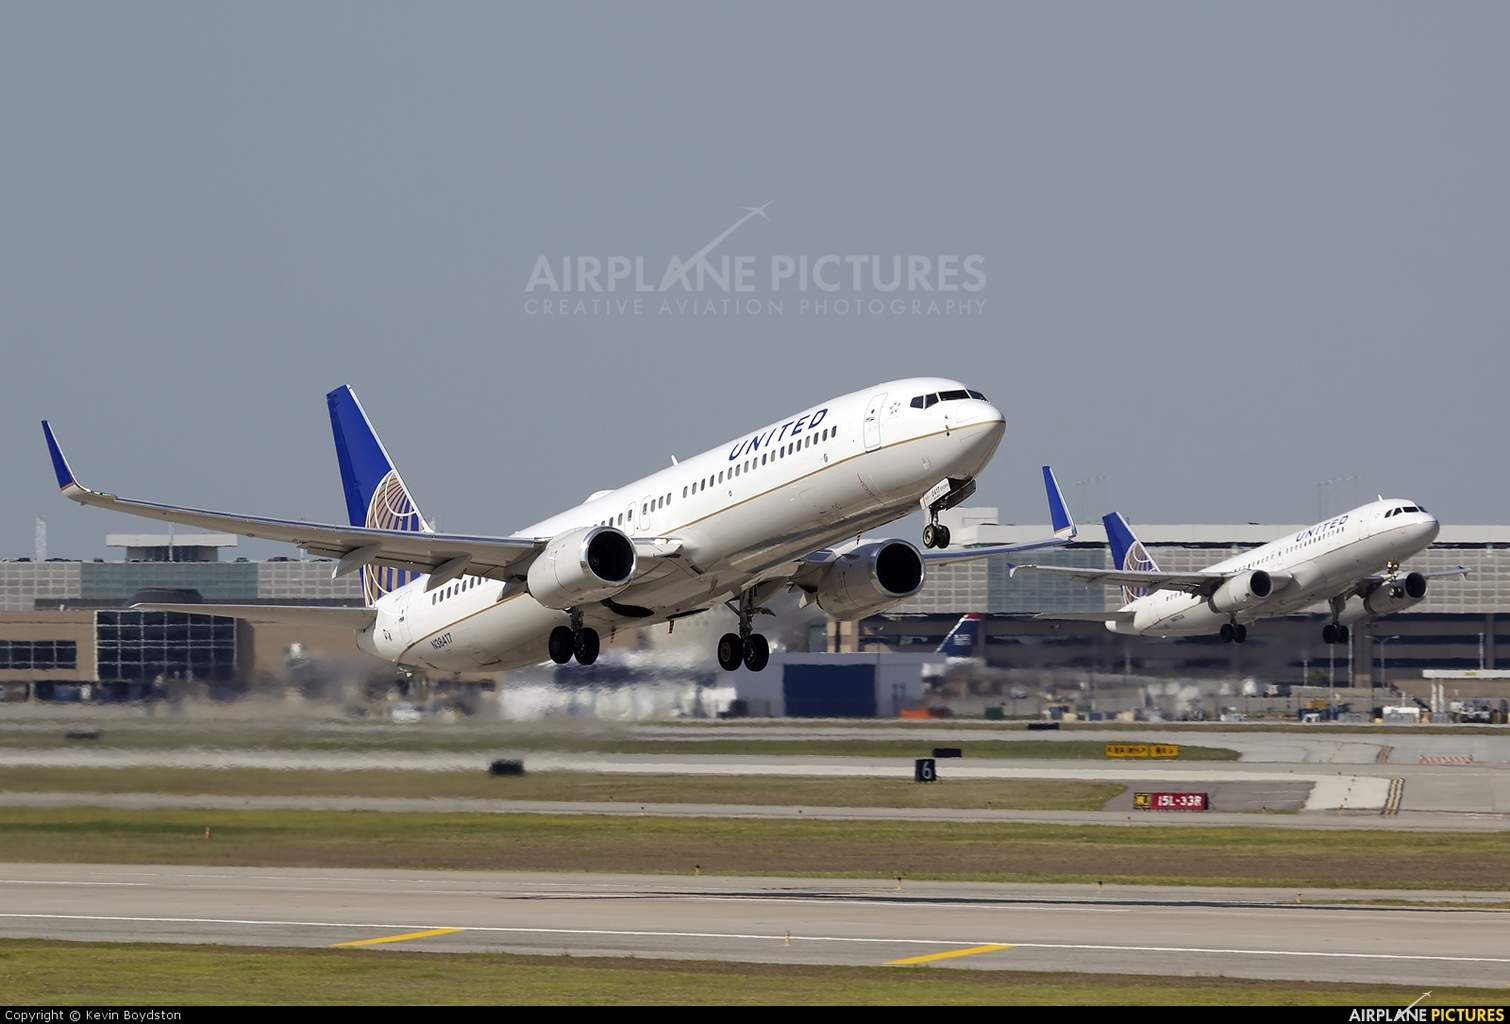 United Airlines adds LEAP class for ALL pilots